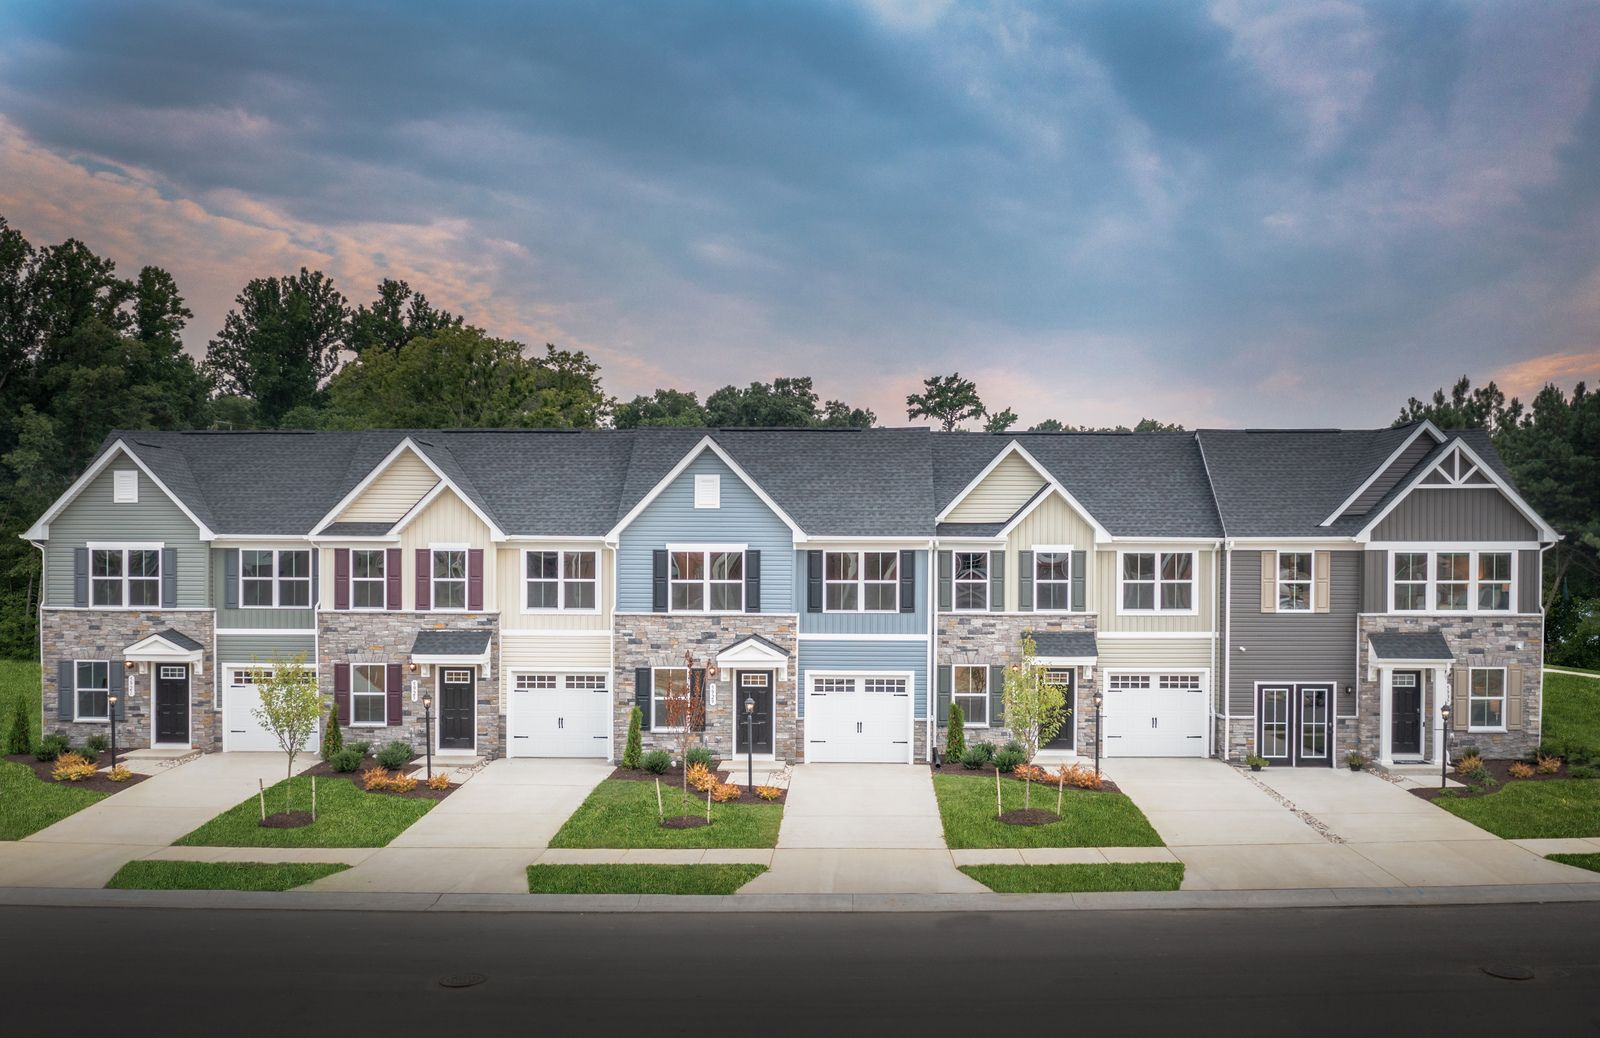 It's time to stop renting and own your own home.:Affordable Luxury Townhomes with easy access to Downtown Richmond, Midlothian and all the conveniences of Chesterfield County.